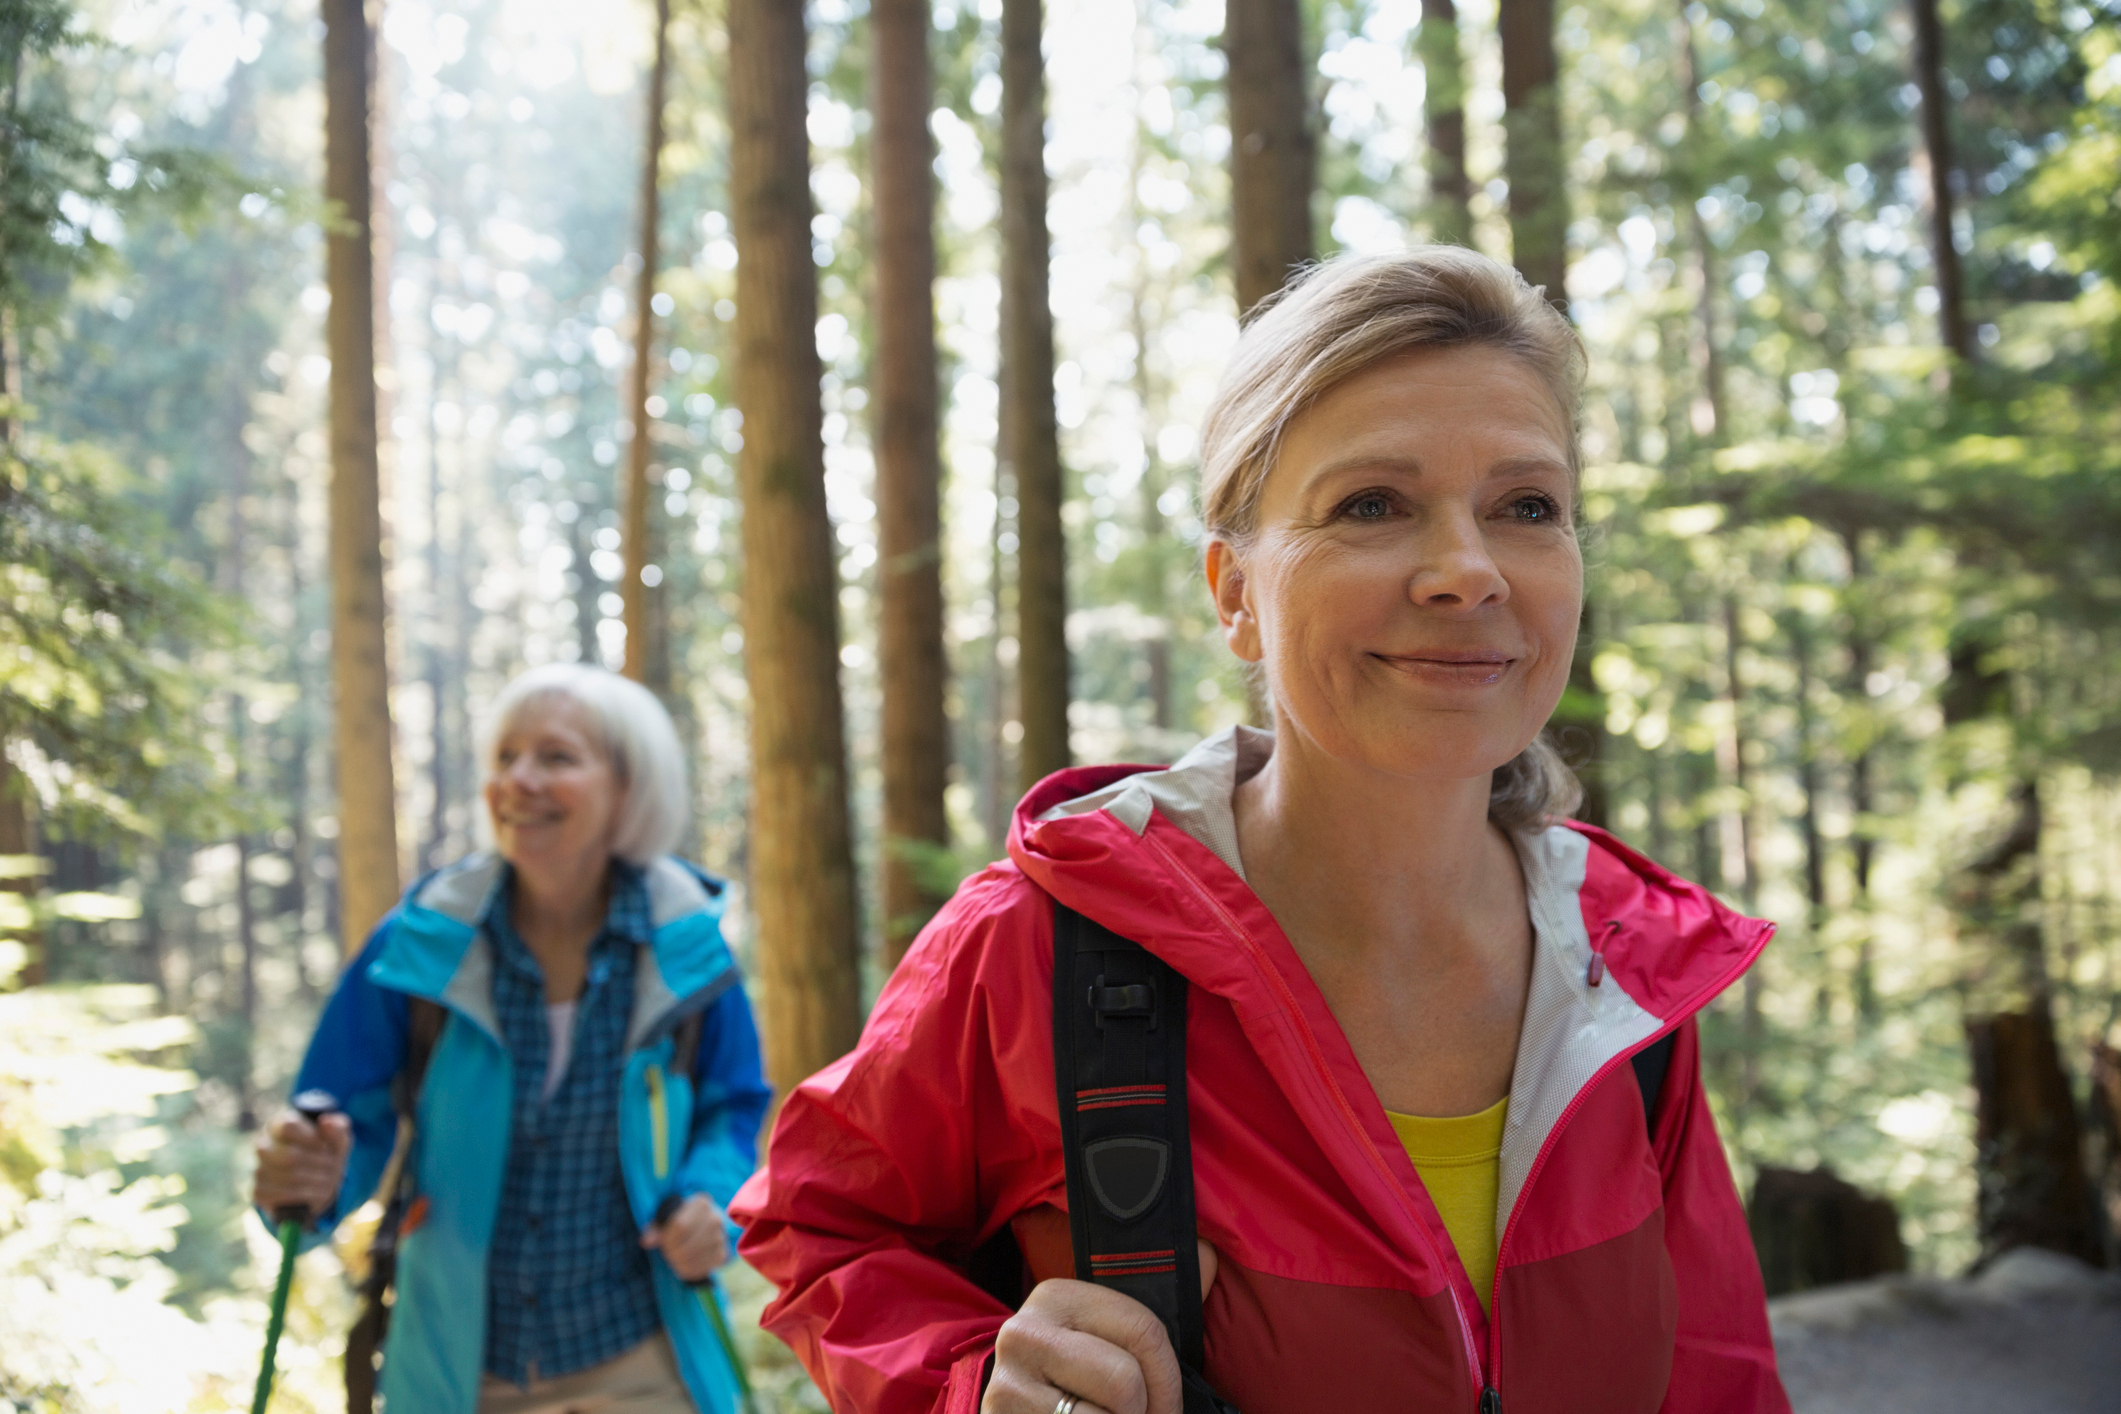 Two women walking in the woods. (Getty Images)